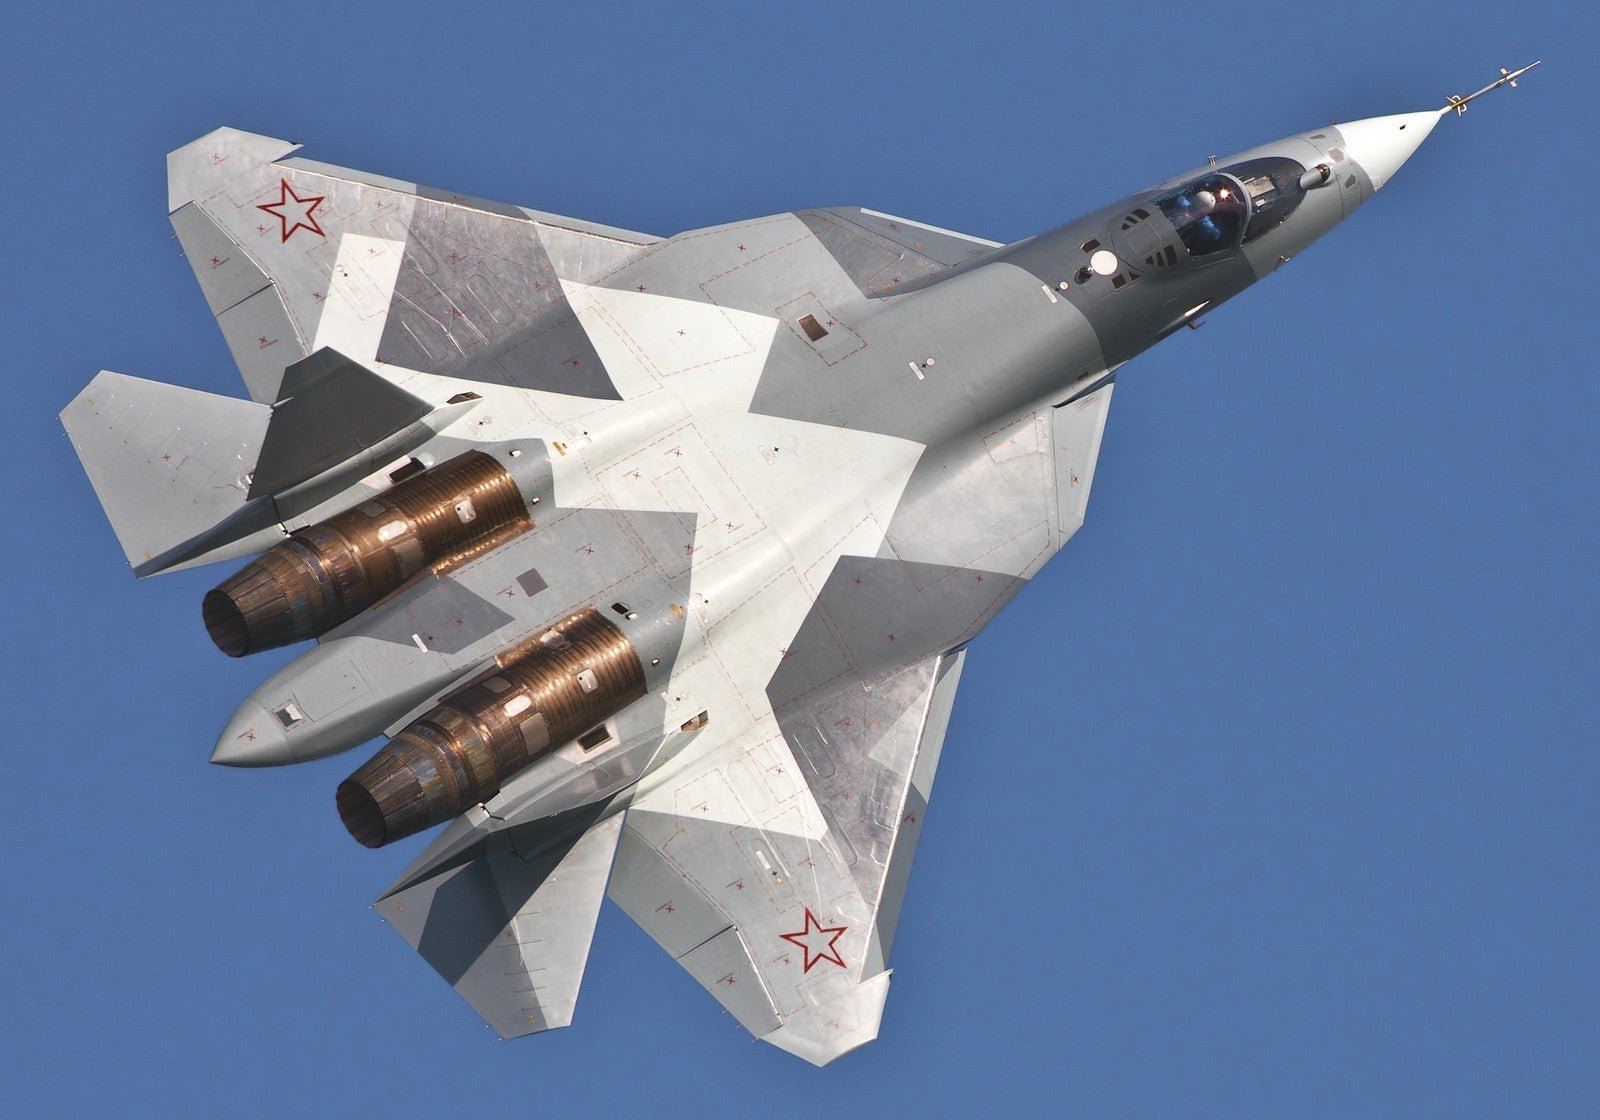 Russian fighter pilots could soon fly alongside bomb-filled combat drones